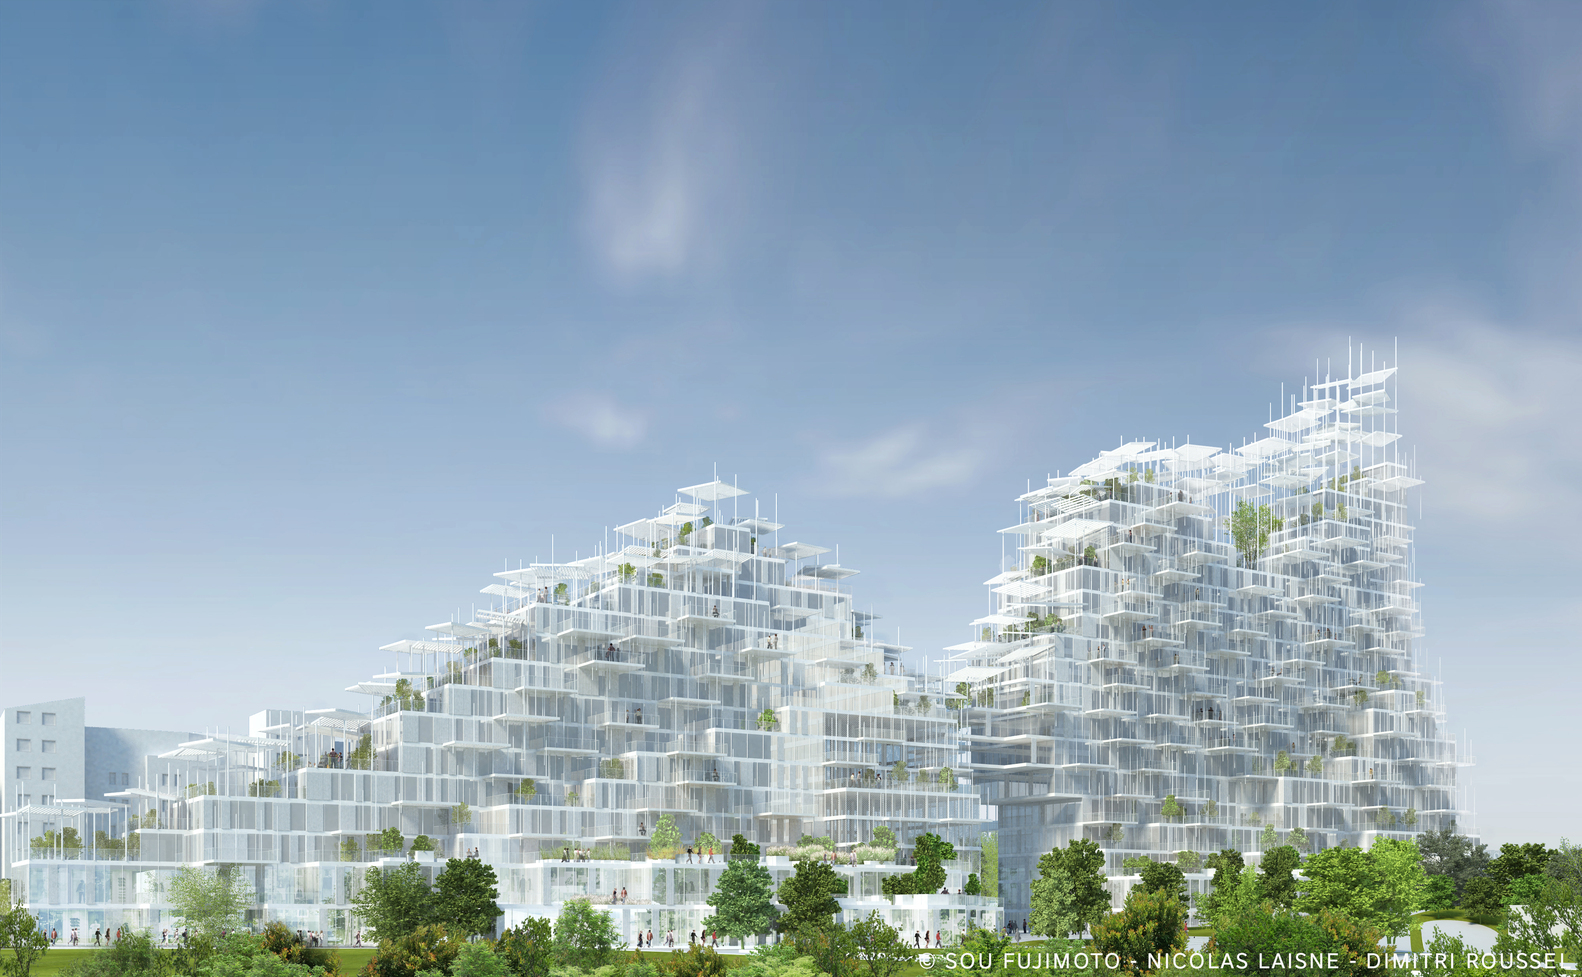 Sou Fujimoto Nicolas Laisné and Dimitri Roussel - Village Vertical - in Grand Paris - IGS Magazine - 1